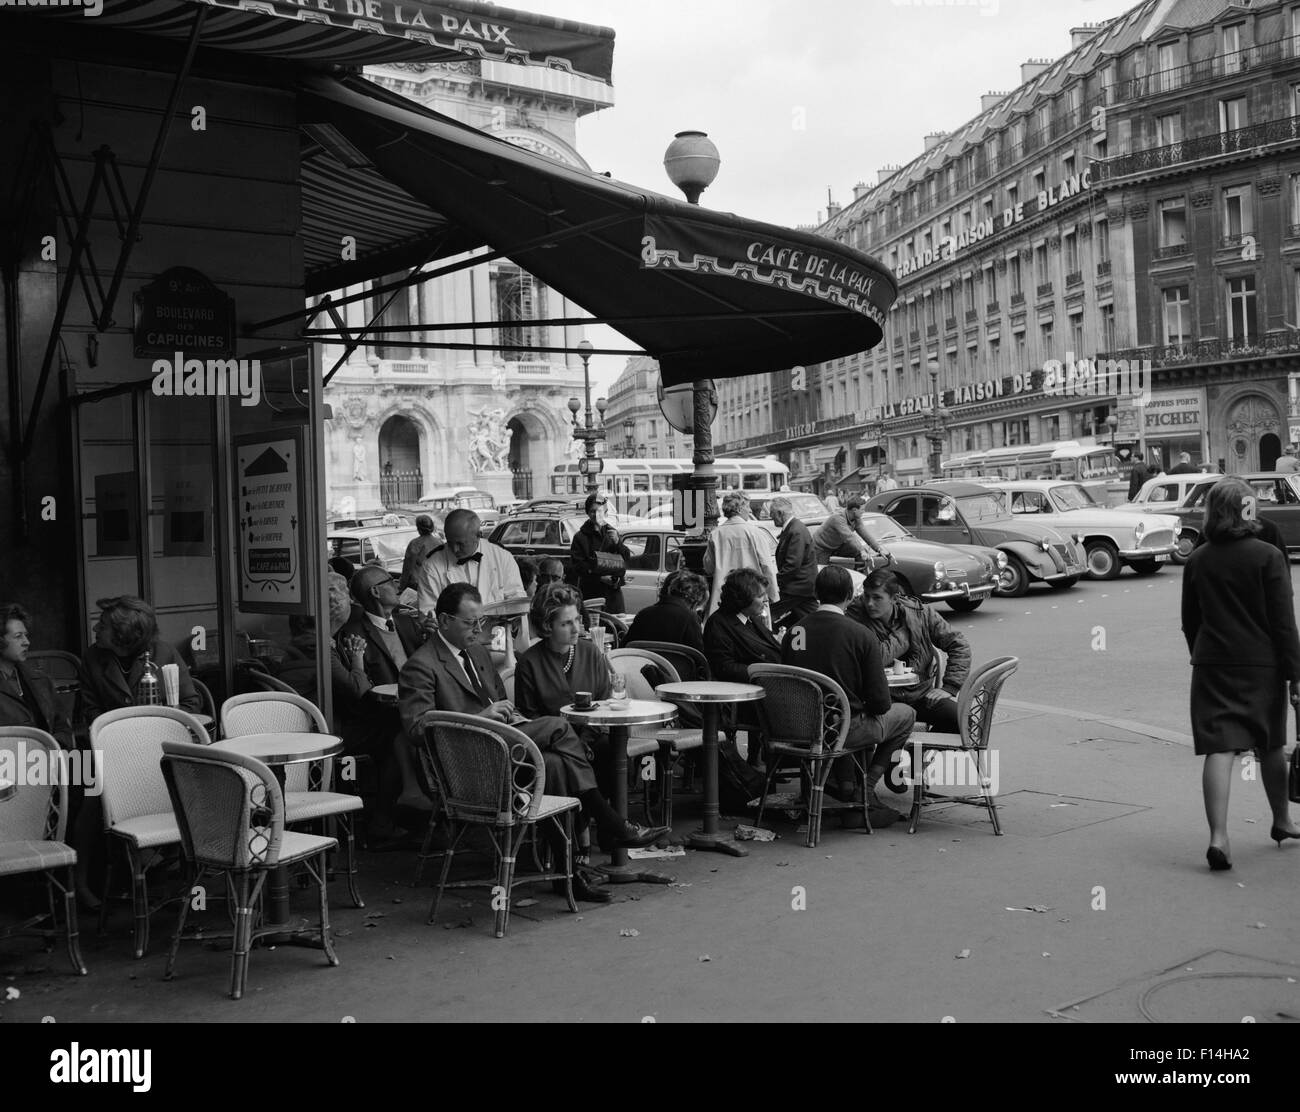 Paris Sidewalk Cafe Chairs